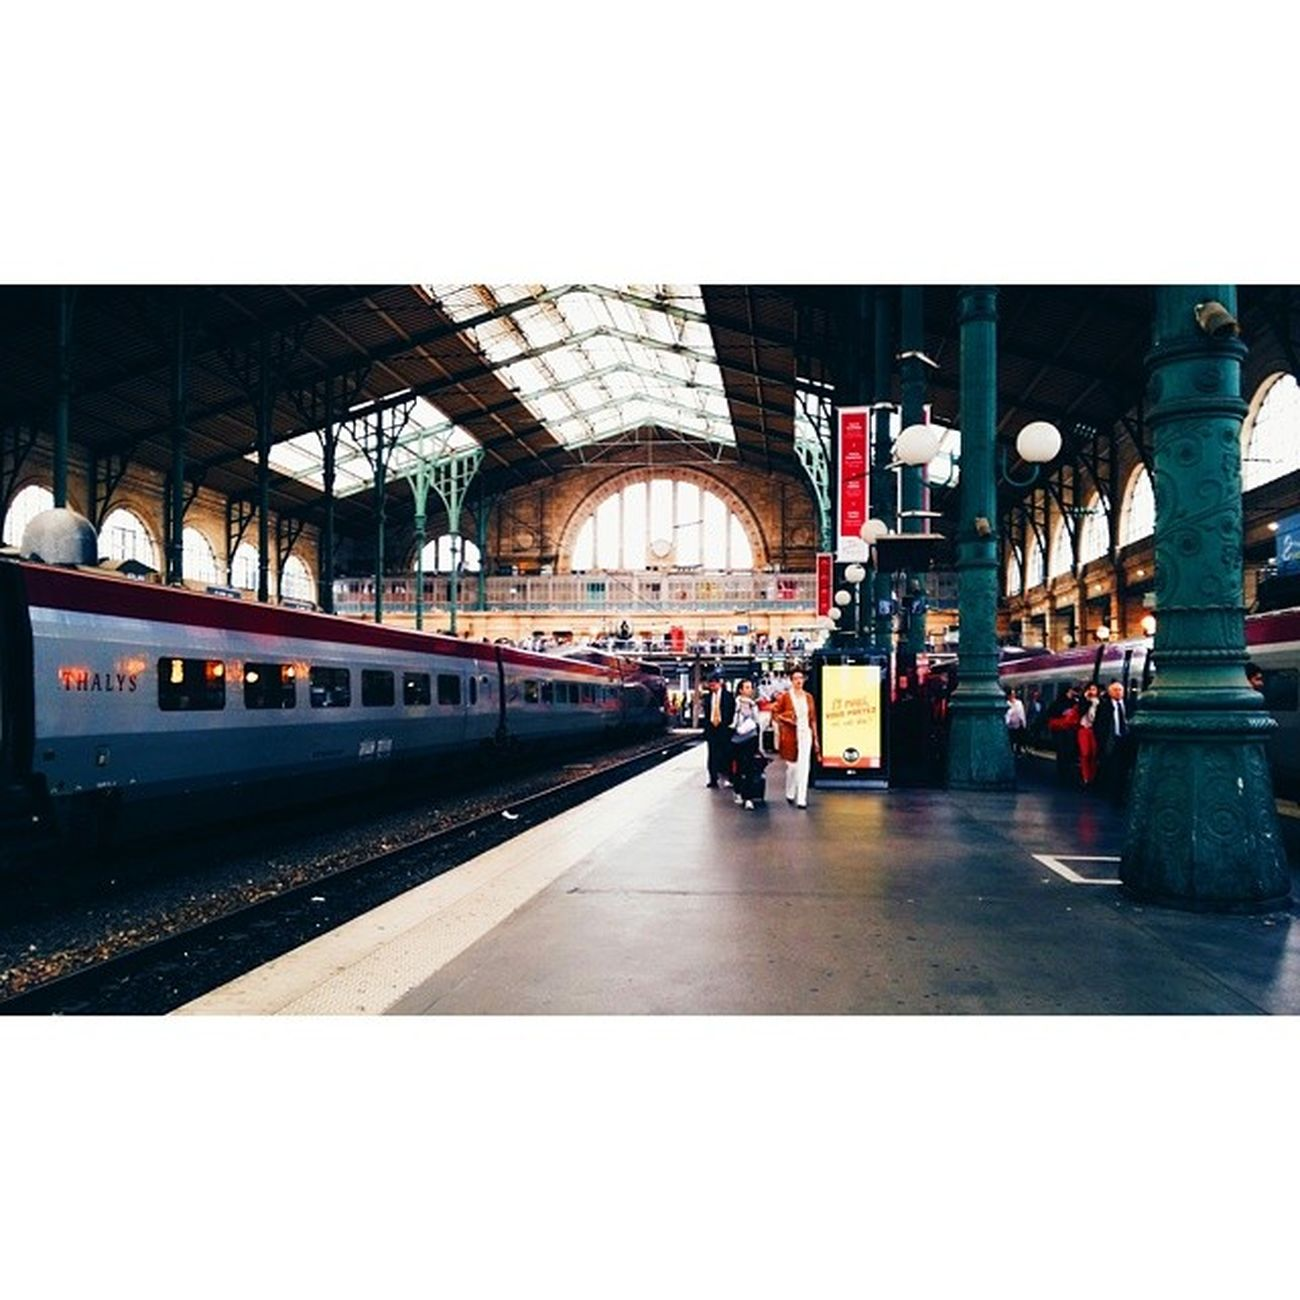 Brussels here I am • VSCO Vscocam Paristobrussels Paris trainstation